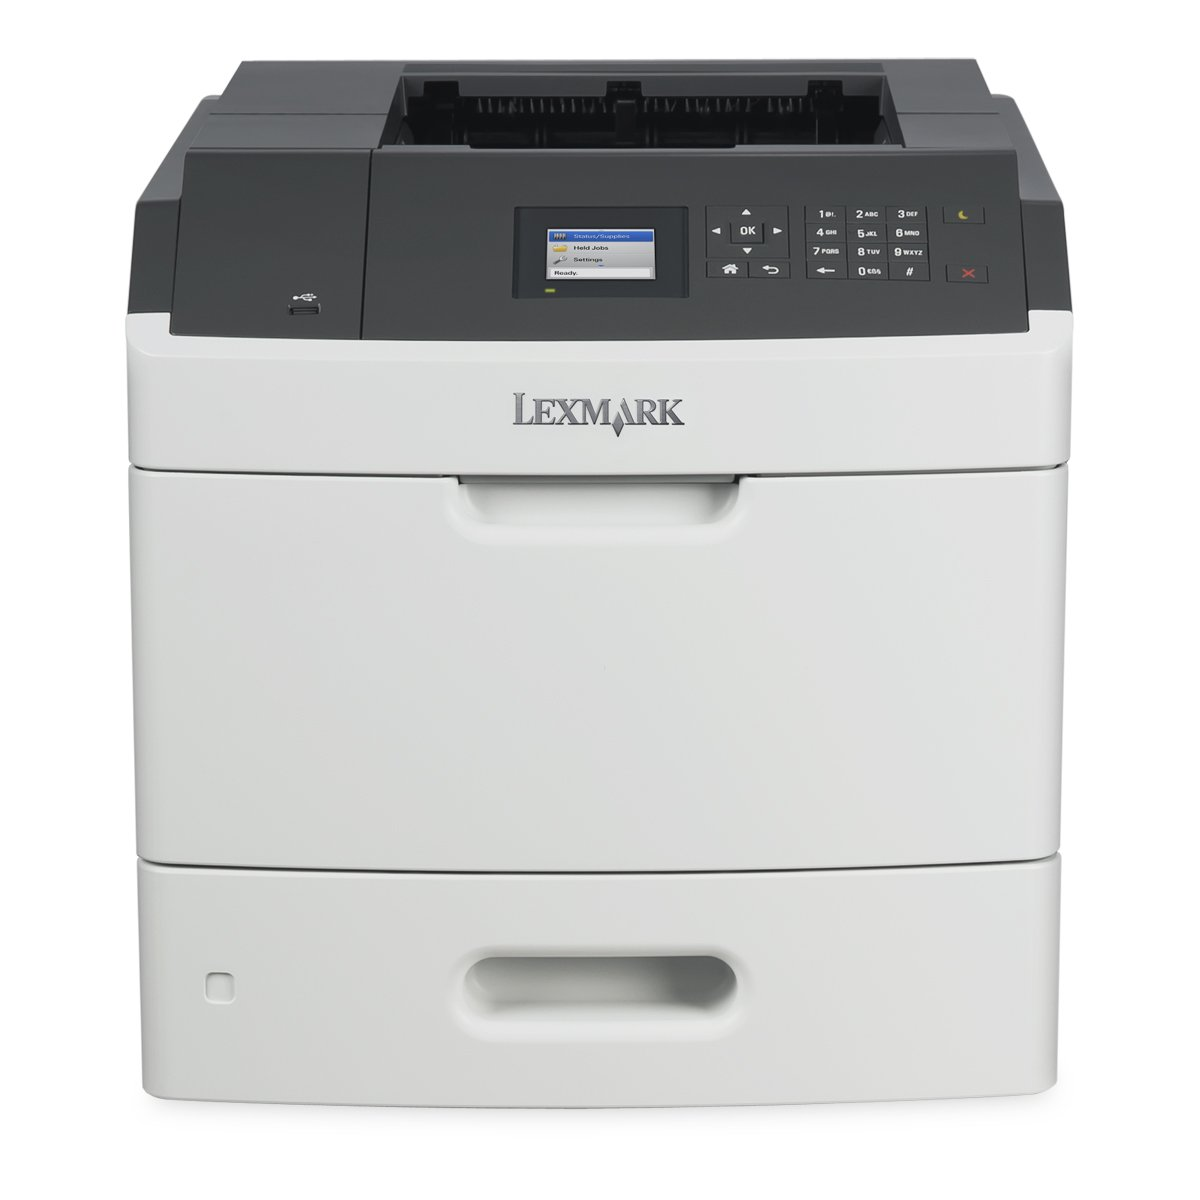 Amazon.com: Lexmark MS810dn MonochromeLaser Printer, Network Ready, Duplex  Printing and Professional Features: Electronics